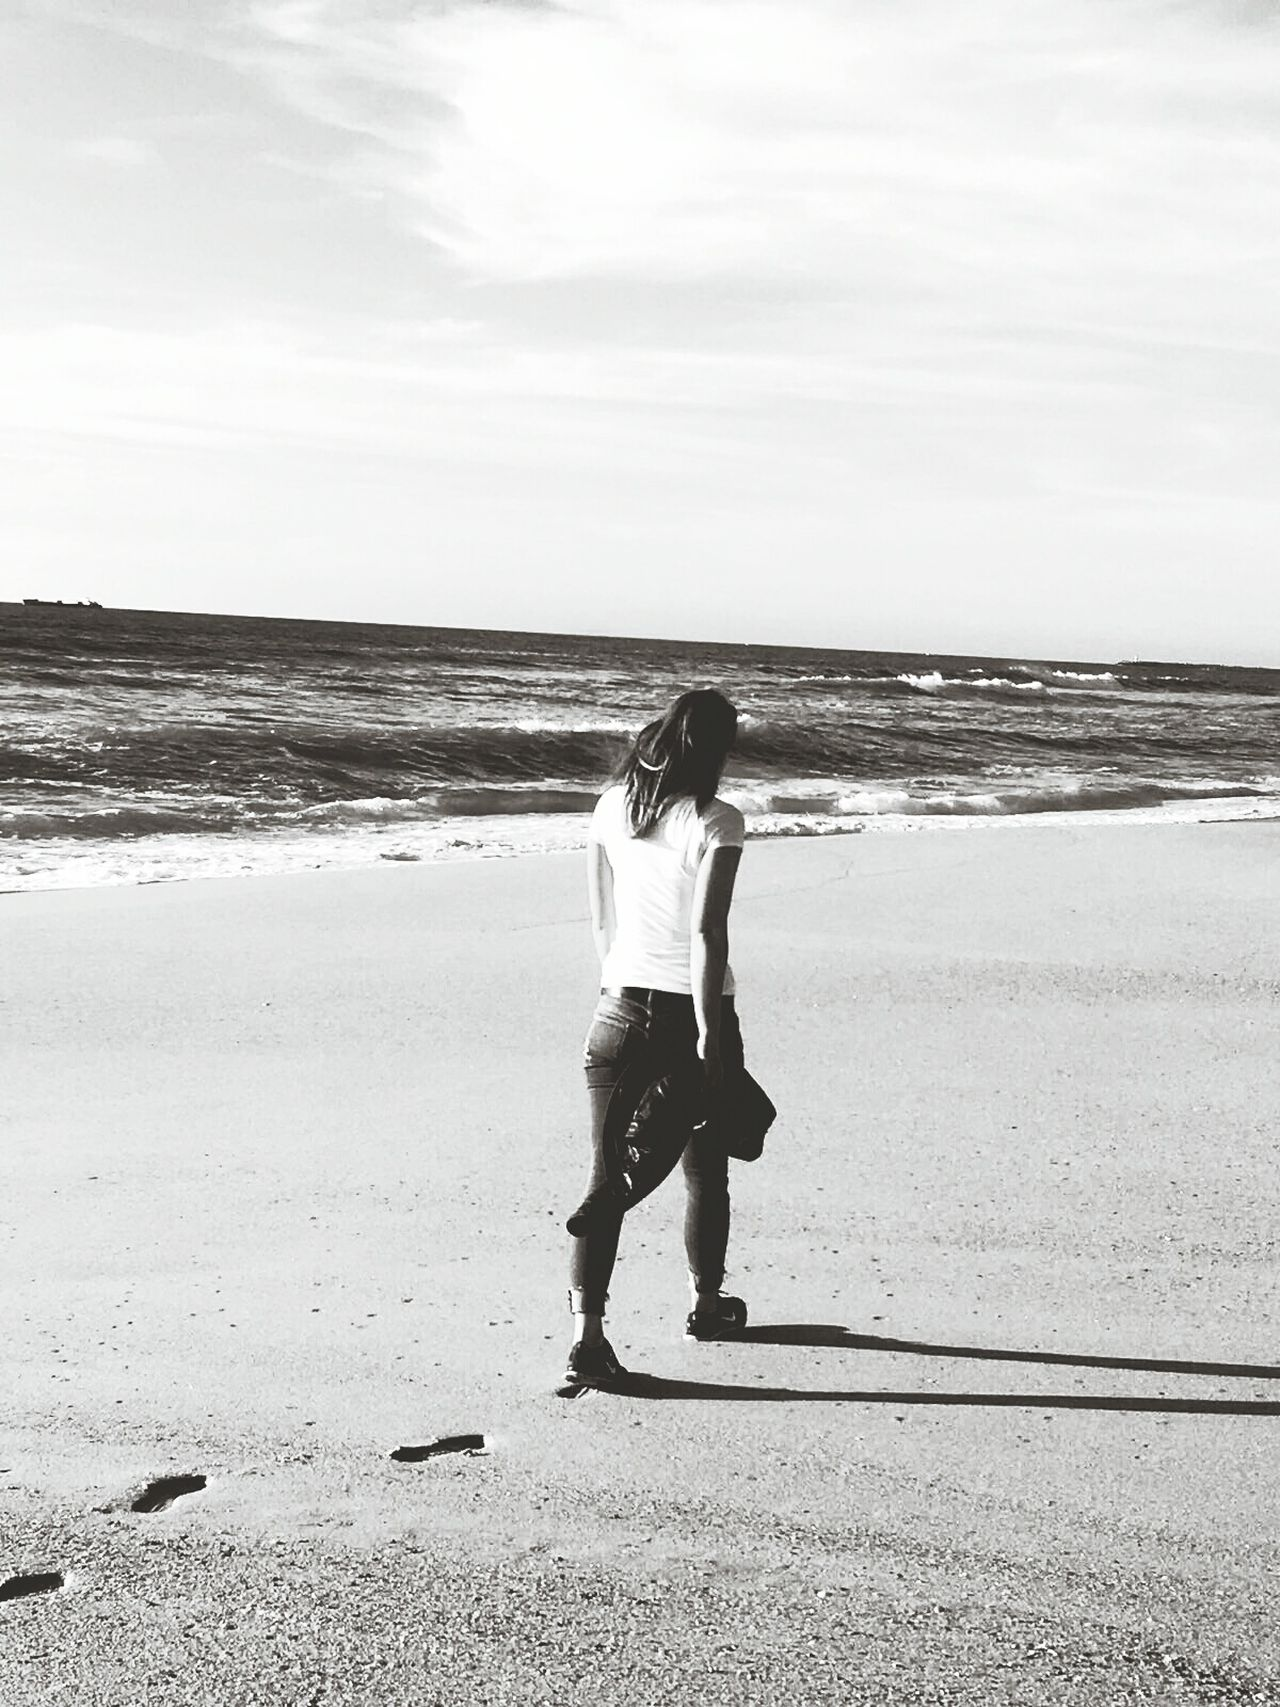 Choose your path... Sea Beach One Young Woman Only Outdoors Water Lifestyles Be Happy And Enjoy The Little Things Enjoying The Moment Full Length Horizon Over Water One Person Adults Only Sand Cloud - Sky Wave Sky EyeEmNewHere EyeEm Blackandwhite